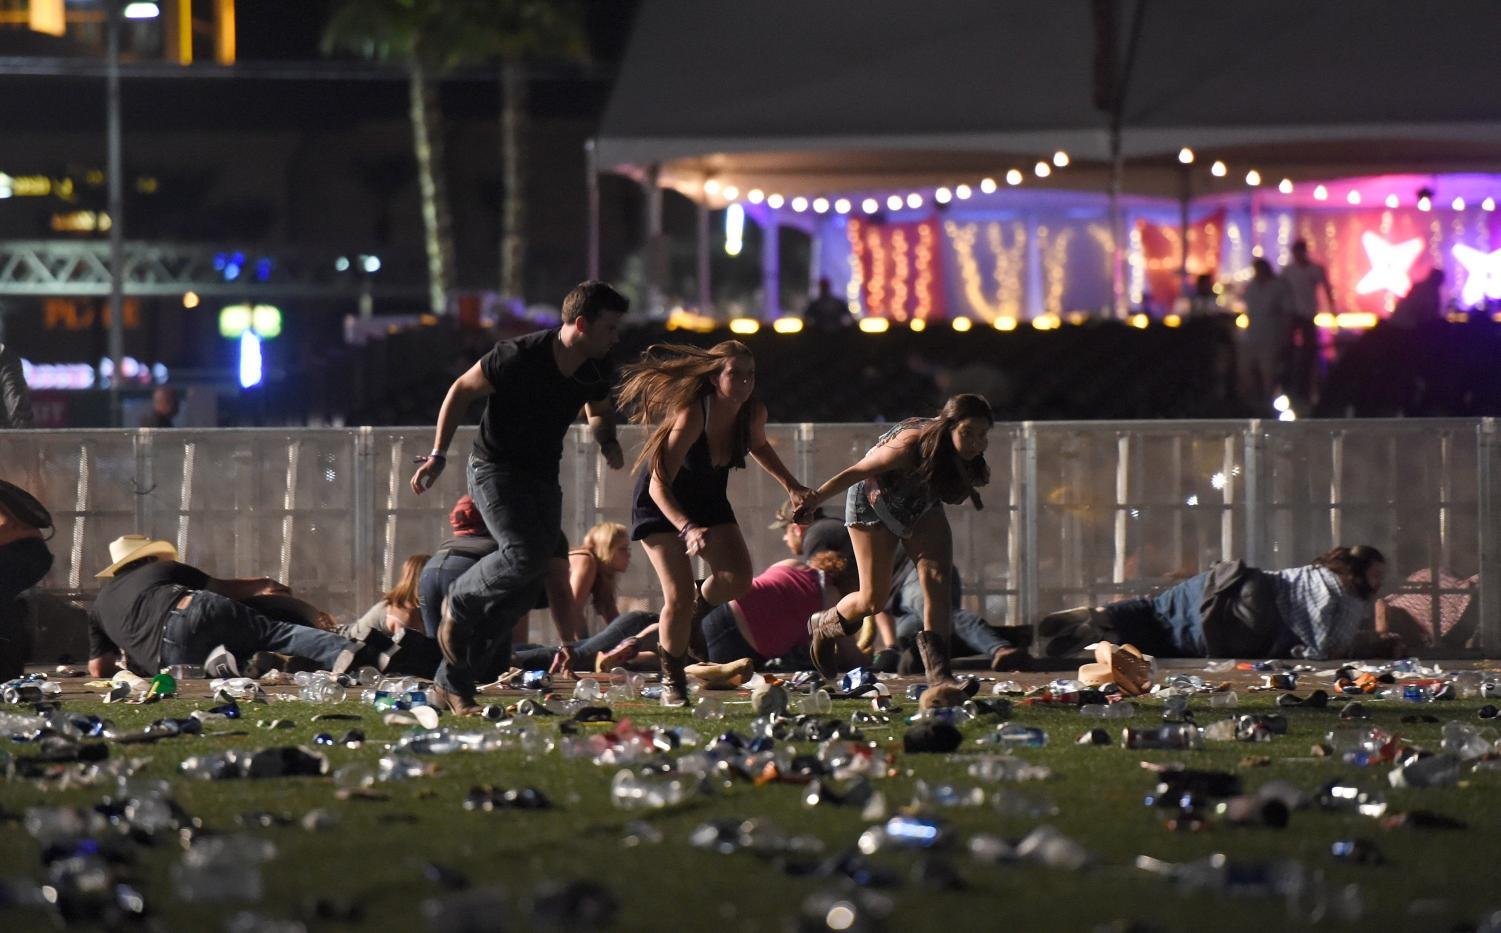 The country has become accustomed to mass shootings.